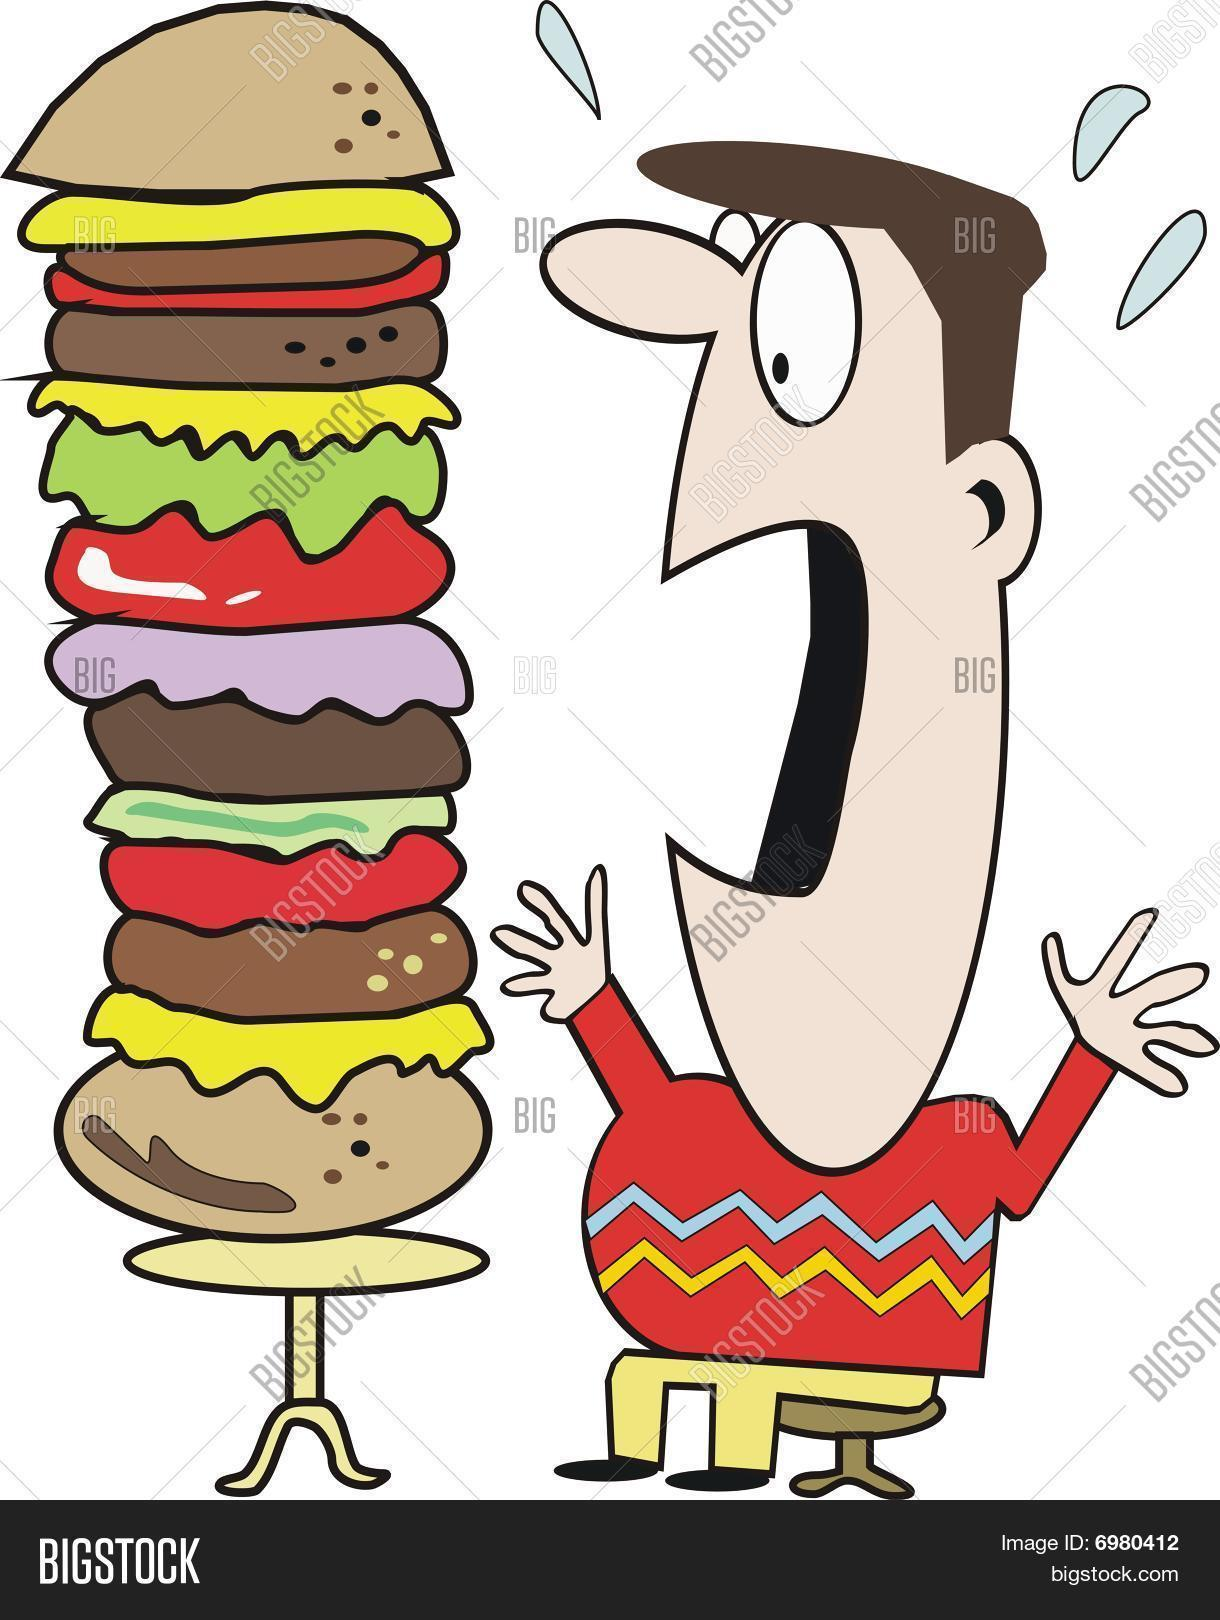 Funny Fast Food Vector & Photo (Free Trial) | Bigstock